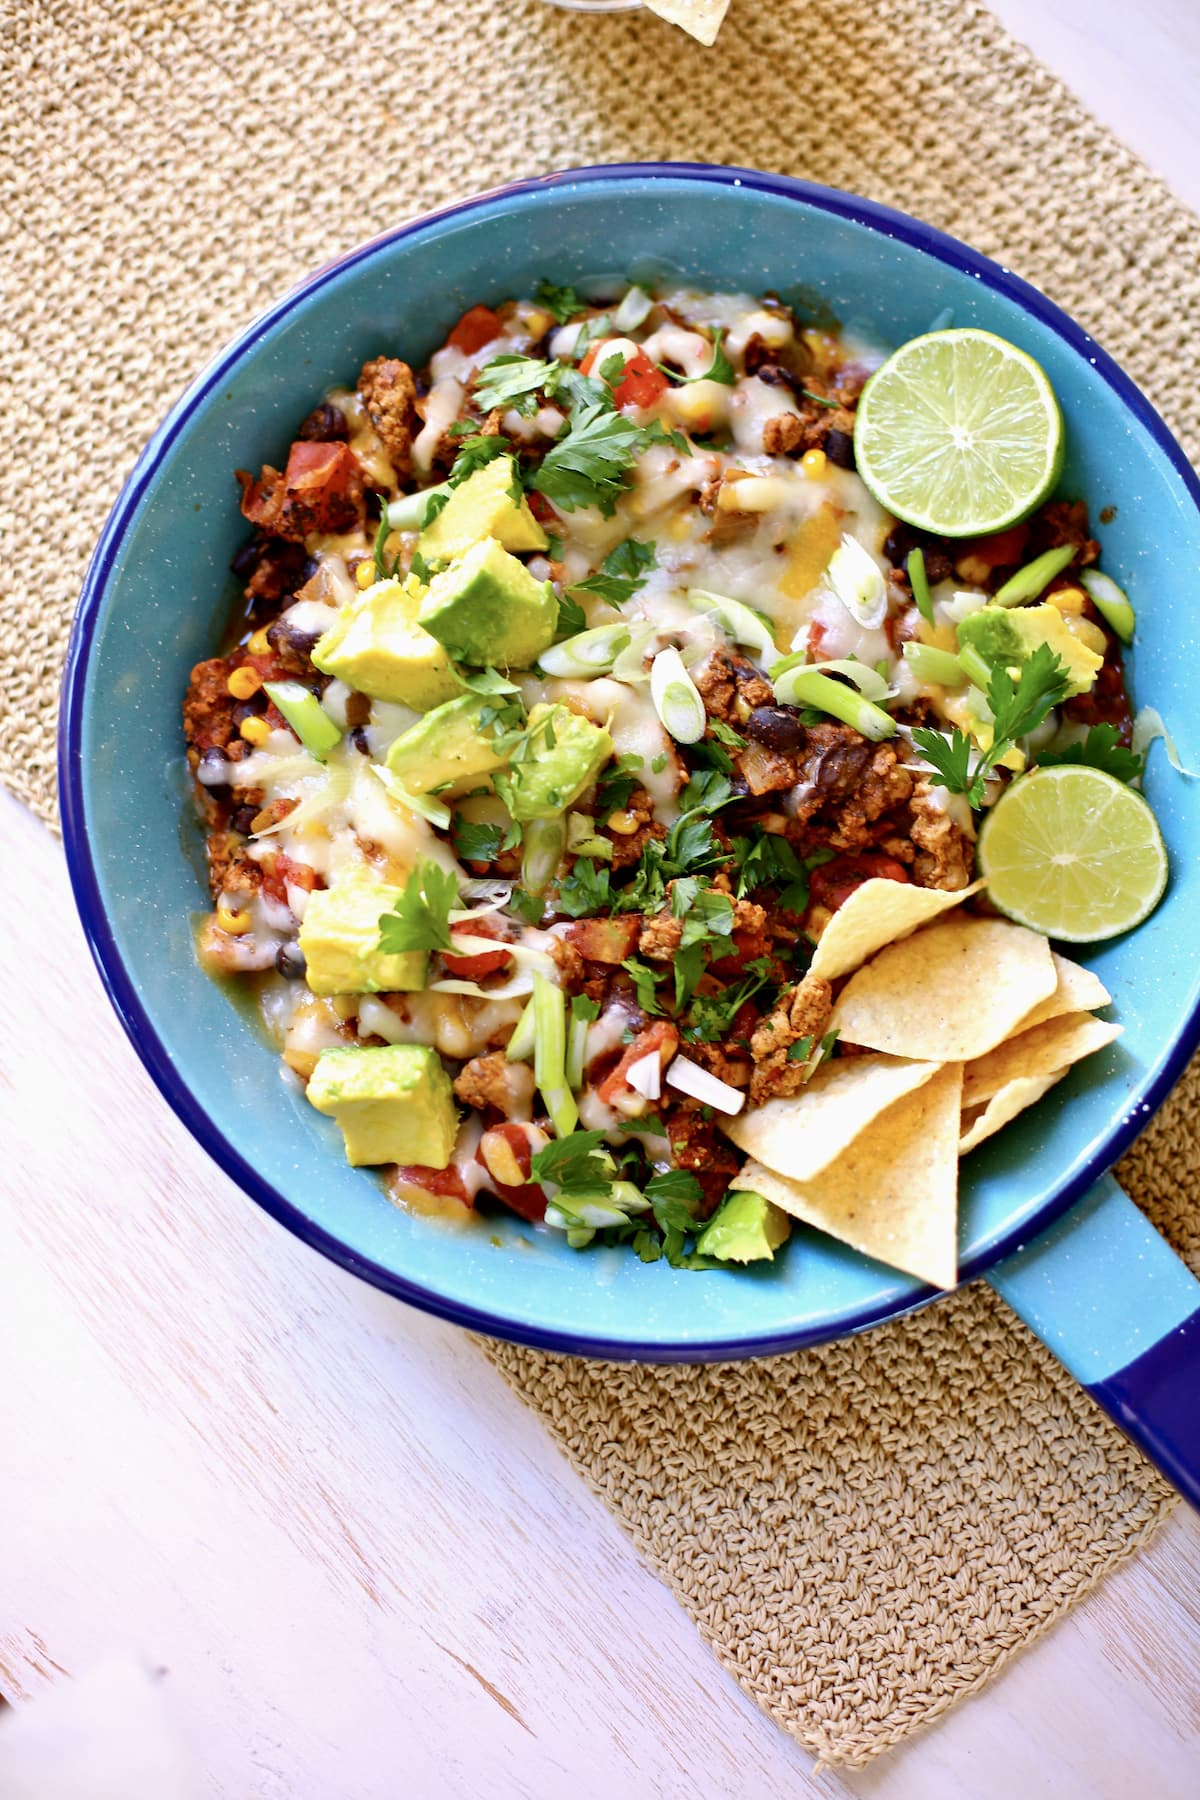 a blue skillet filled with taco emat and cheese and avocados and limes and chips.